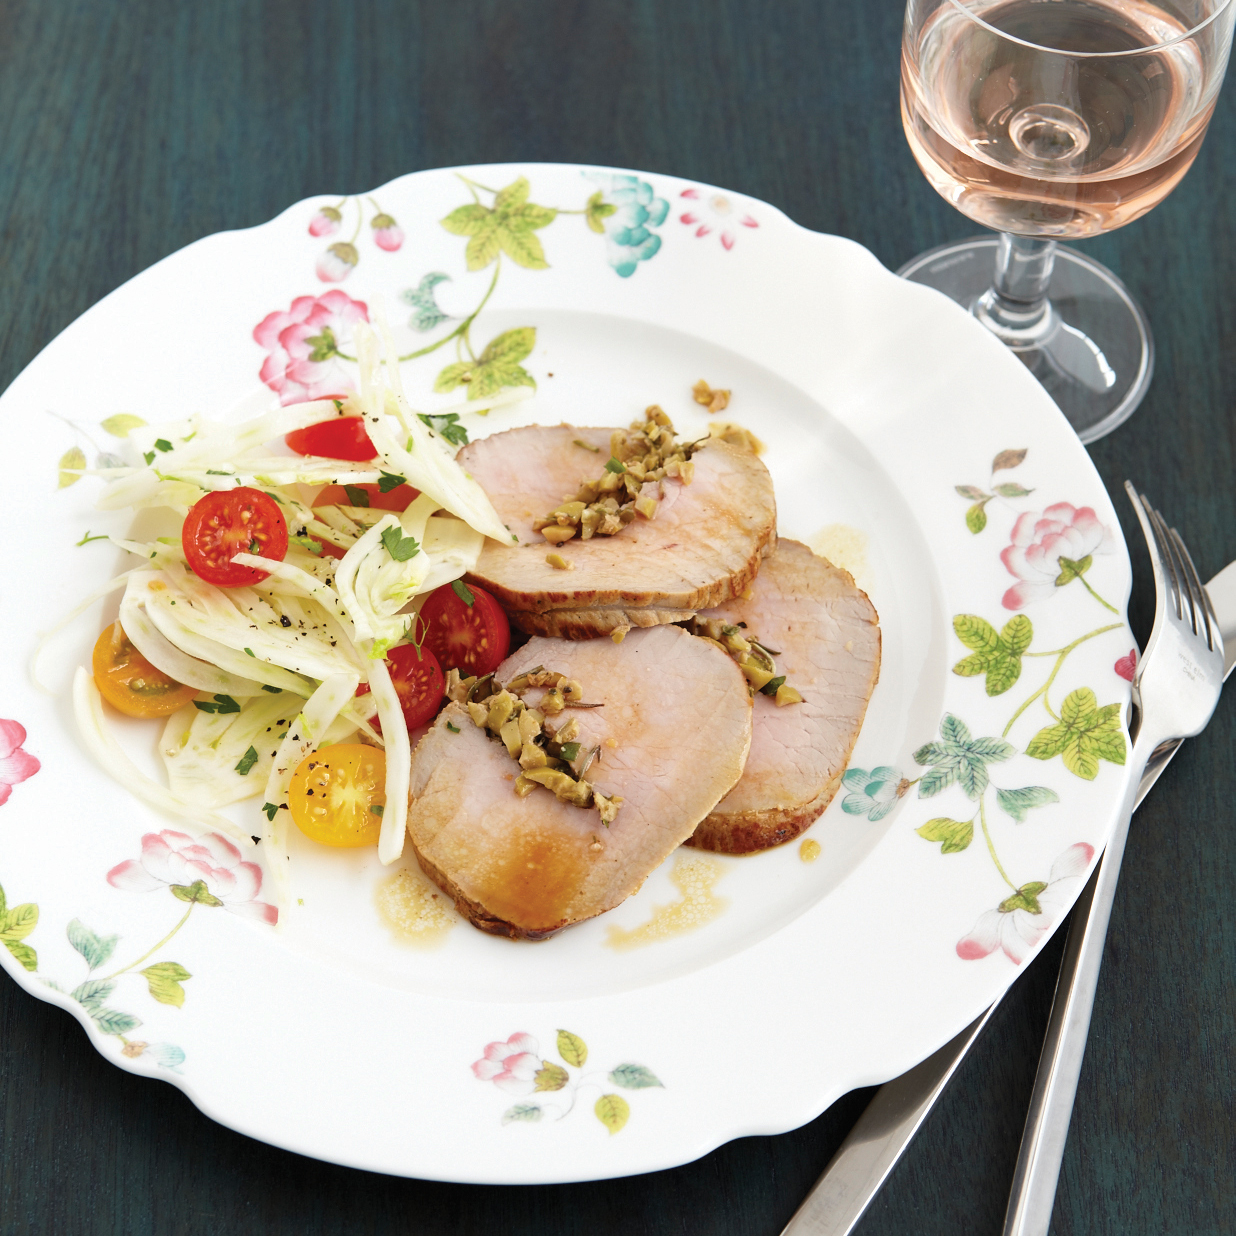 Value Summer Wine: Chilled Veal Roast